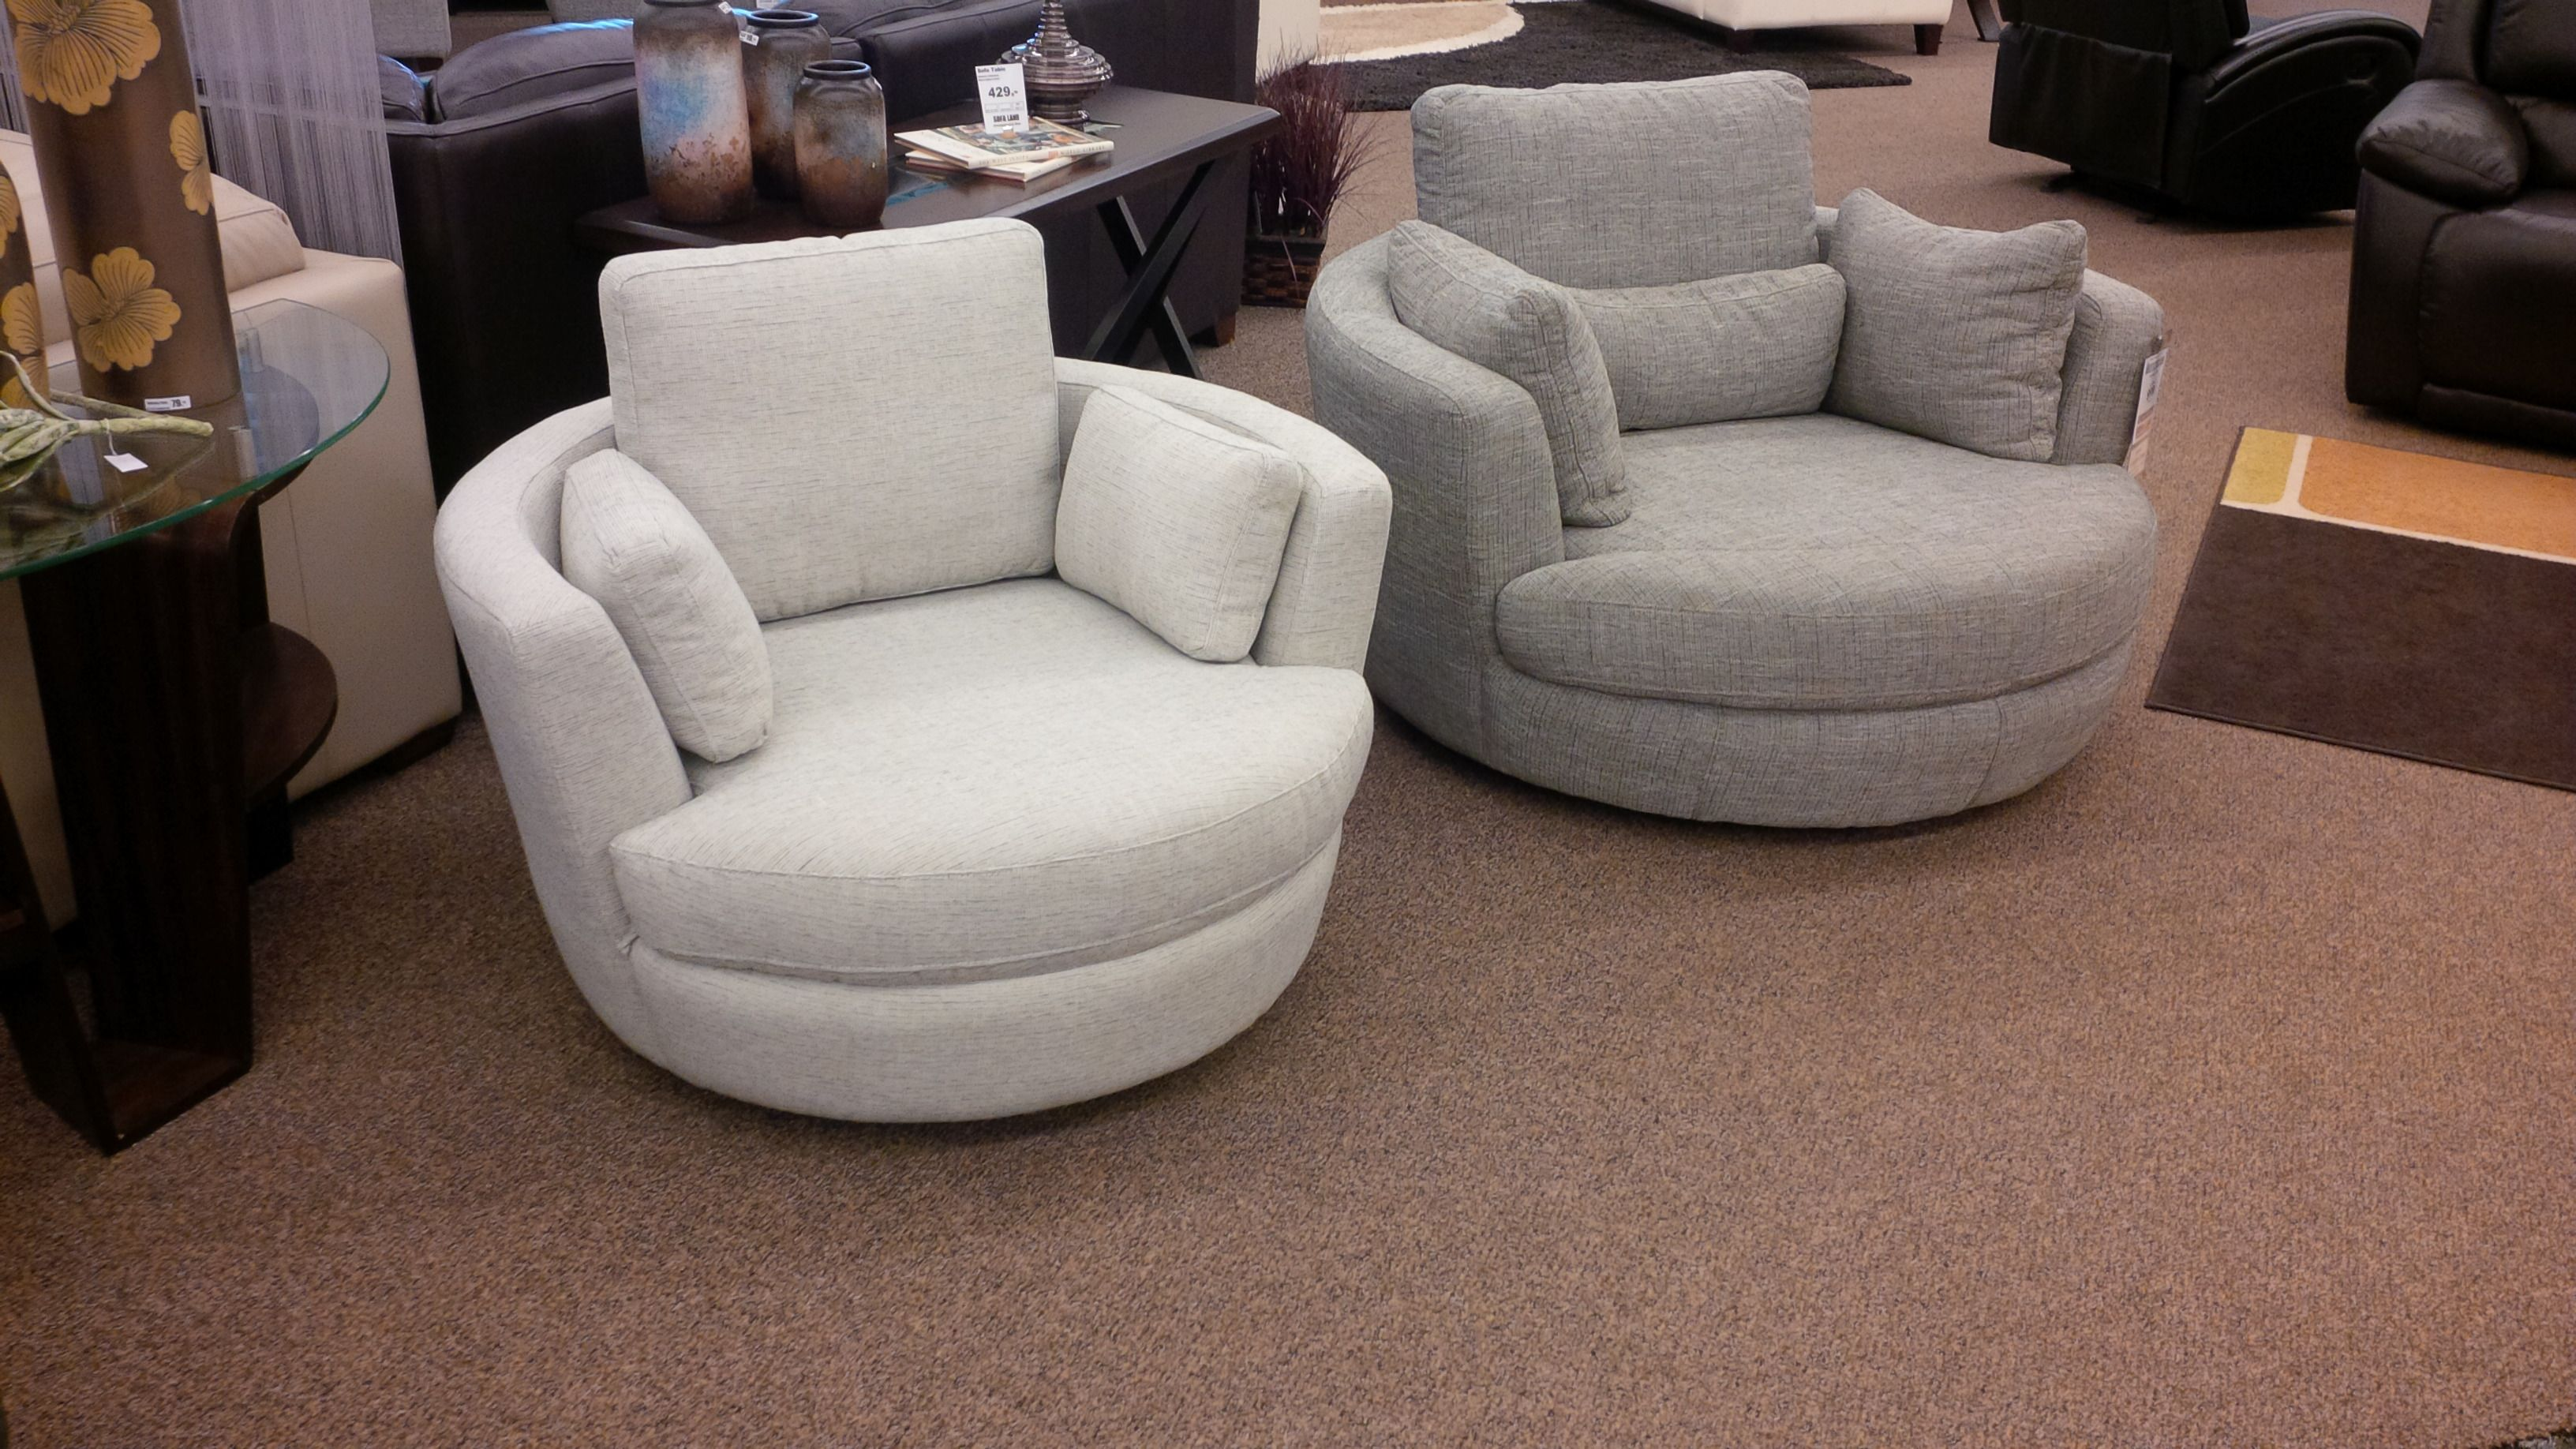 Check out this awesome new Nuzzle Swivel Chair! This is a ...